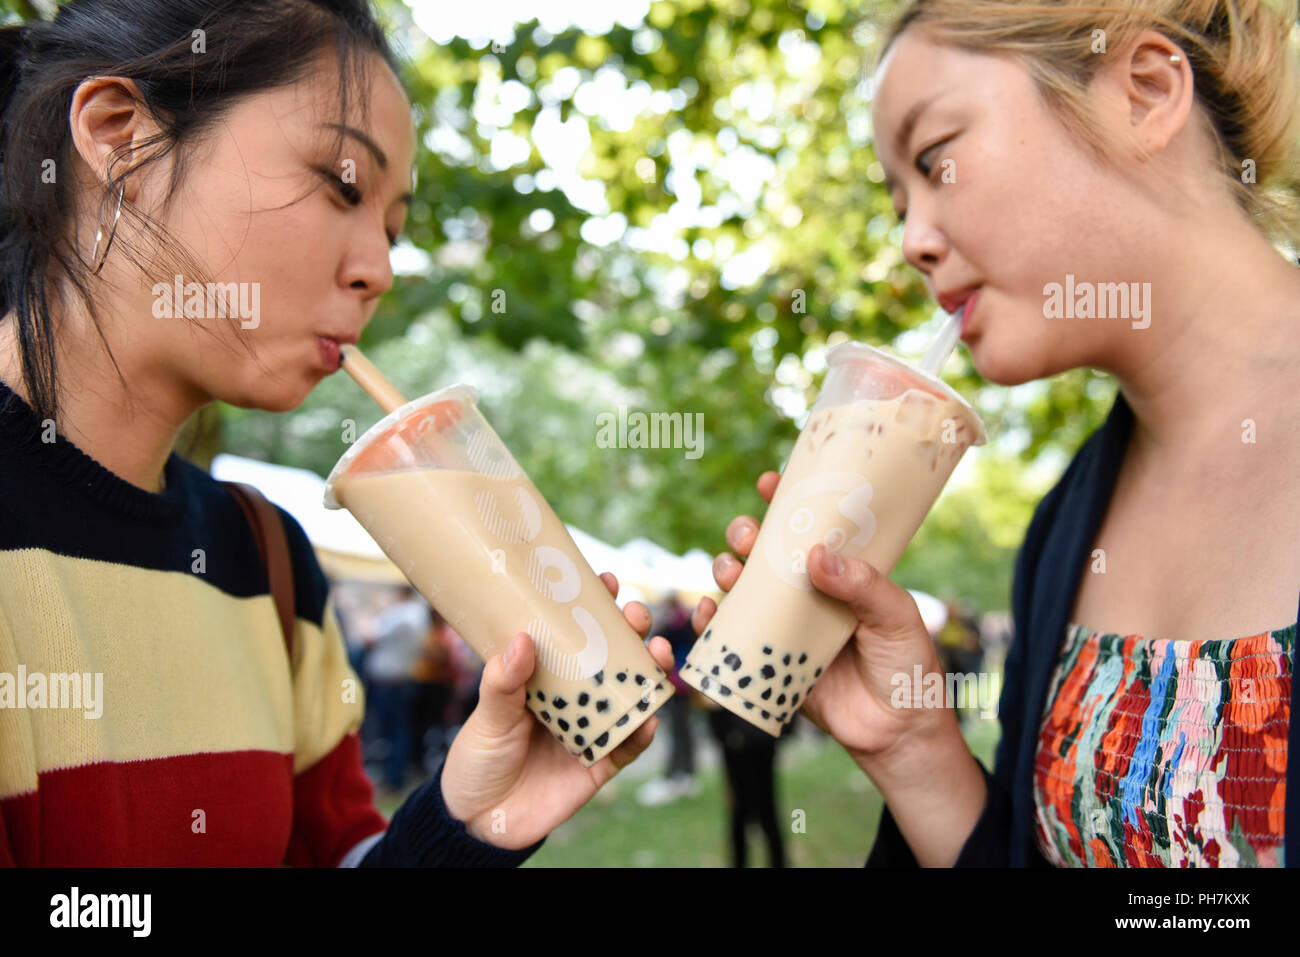 London, UK.  31 August 2018.  Girls enjoy a popular bubble tea drink on the opening day of the three day Chinese Food Festival at Potters Fields Park next to City Hall.  As well as food and drink from different parts of China freshly prepared for visitors to try, there are cooking demonstrations and presentations by the UK Han Culture Association.  Credit: Stephen Chung / Alamy Live News - Stock Image